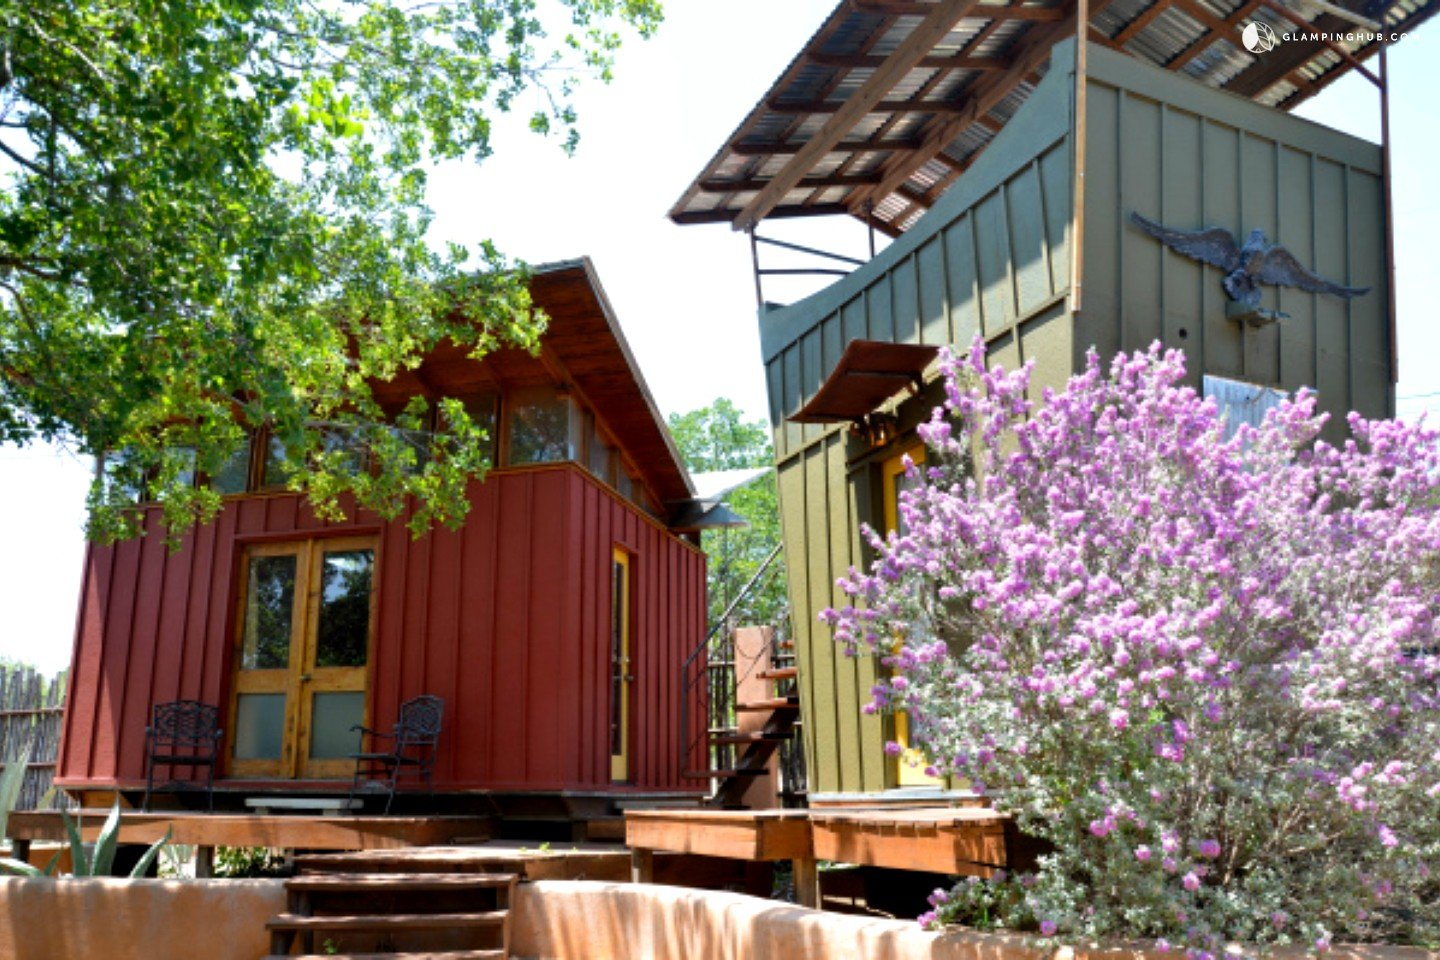 Eco cabins in texas hill country offer yoga retreats near for Texas hill country cabin rentals